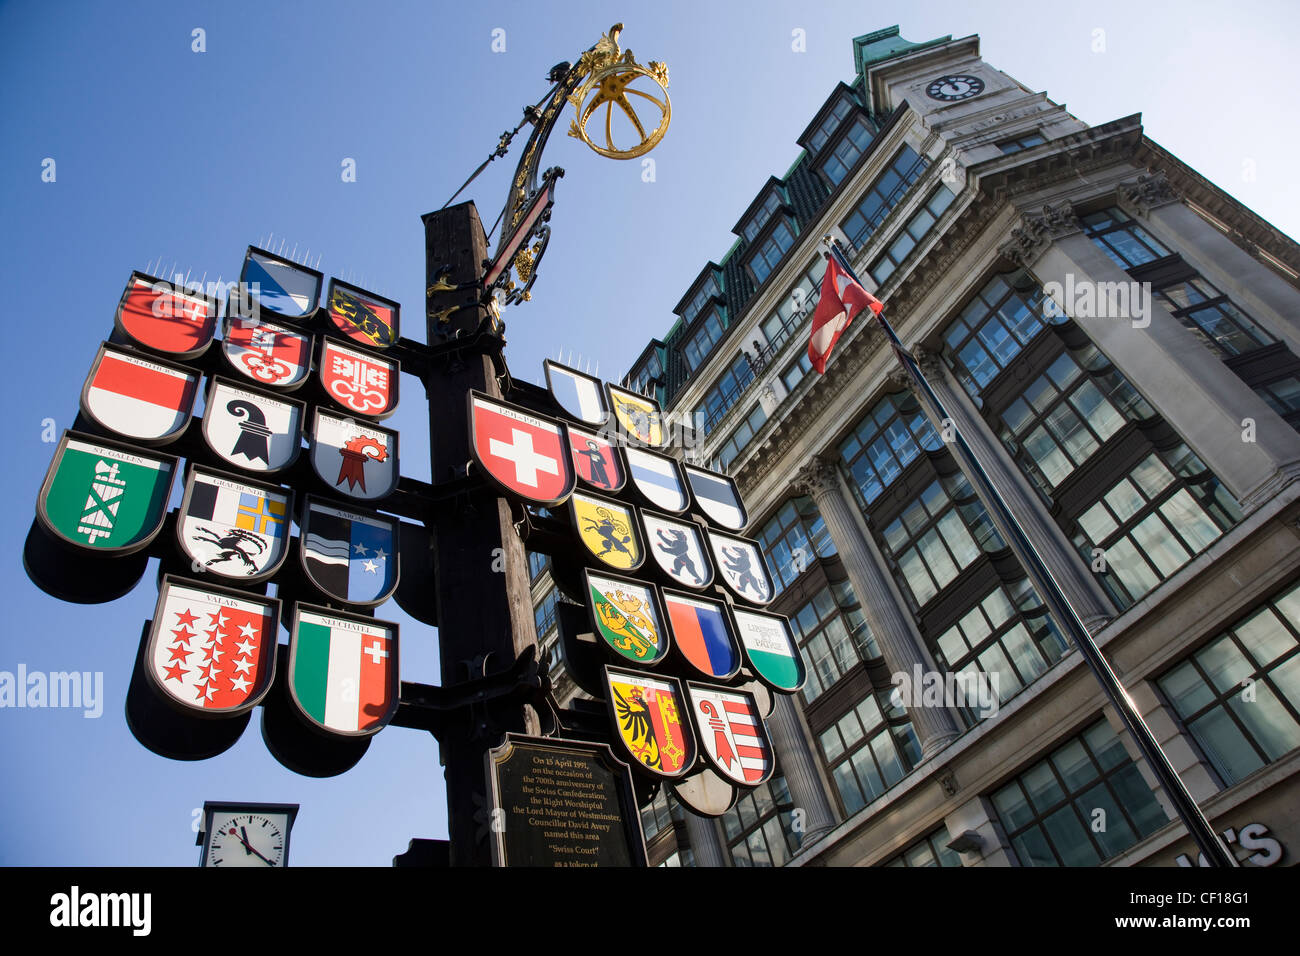 Cantonal tree of Swiss cantons at Swiss Court, Leicester Square, London Stock Photo